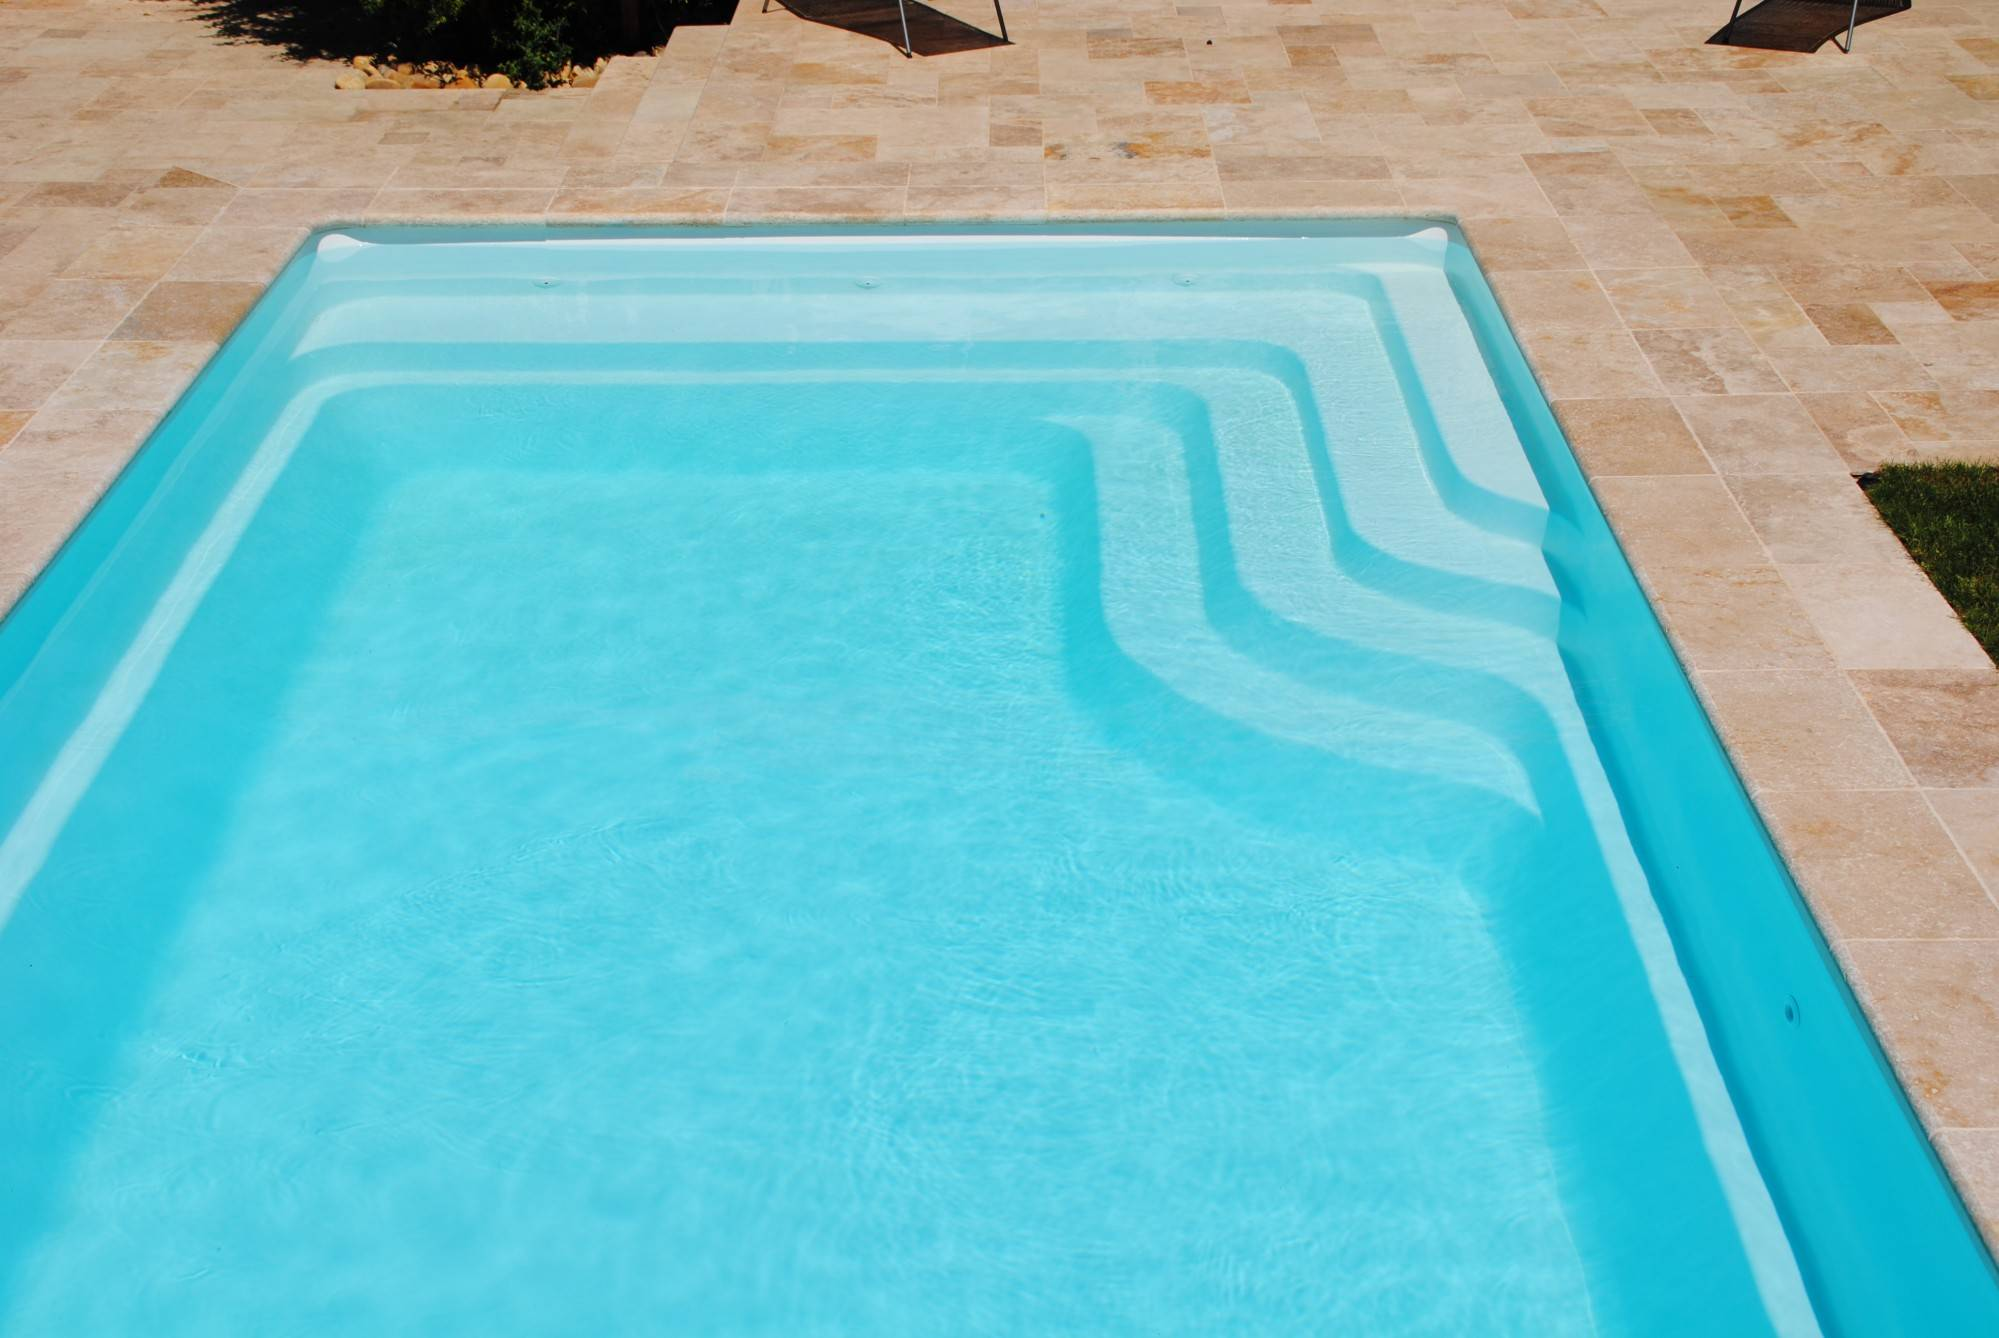 Vente et pose de piscine enterr e coque polyester for Piscine 10x4 prix